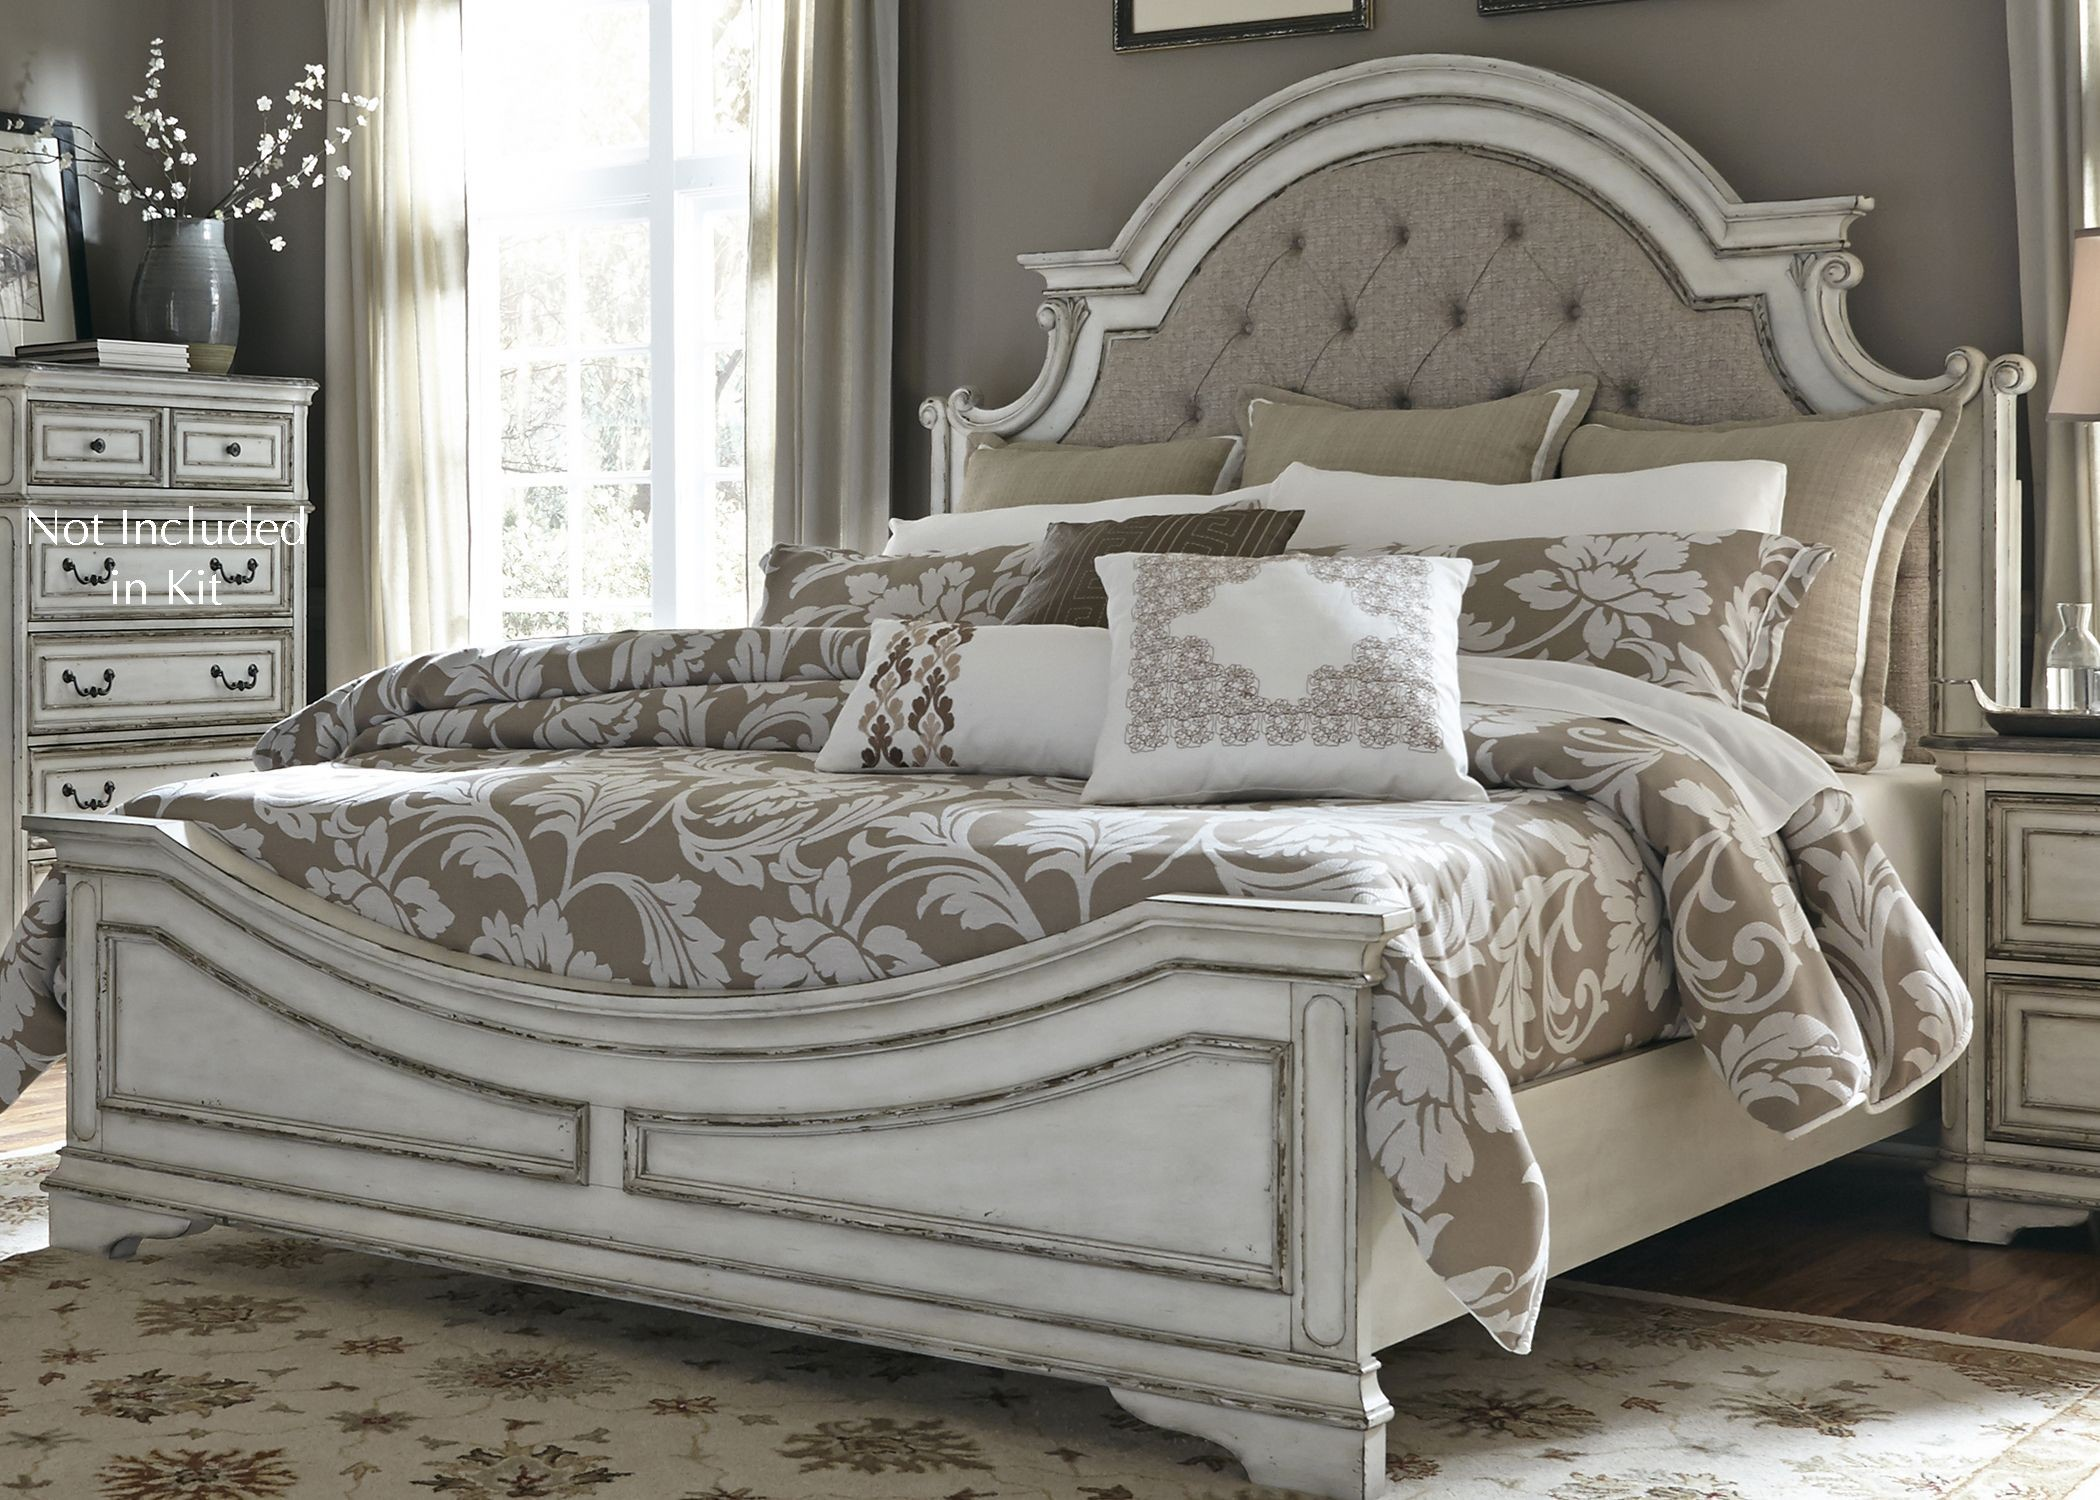 bedroom furniture your white creating antique of images own